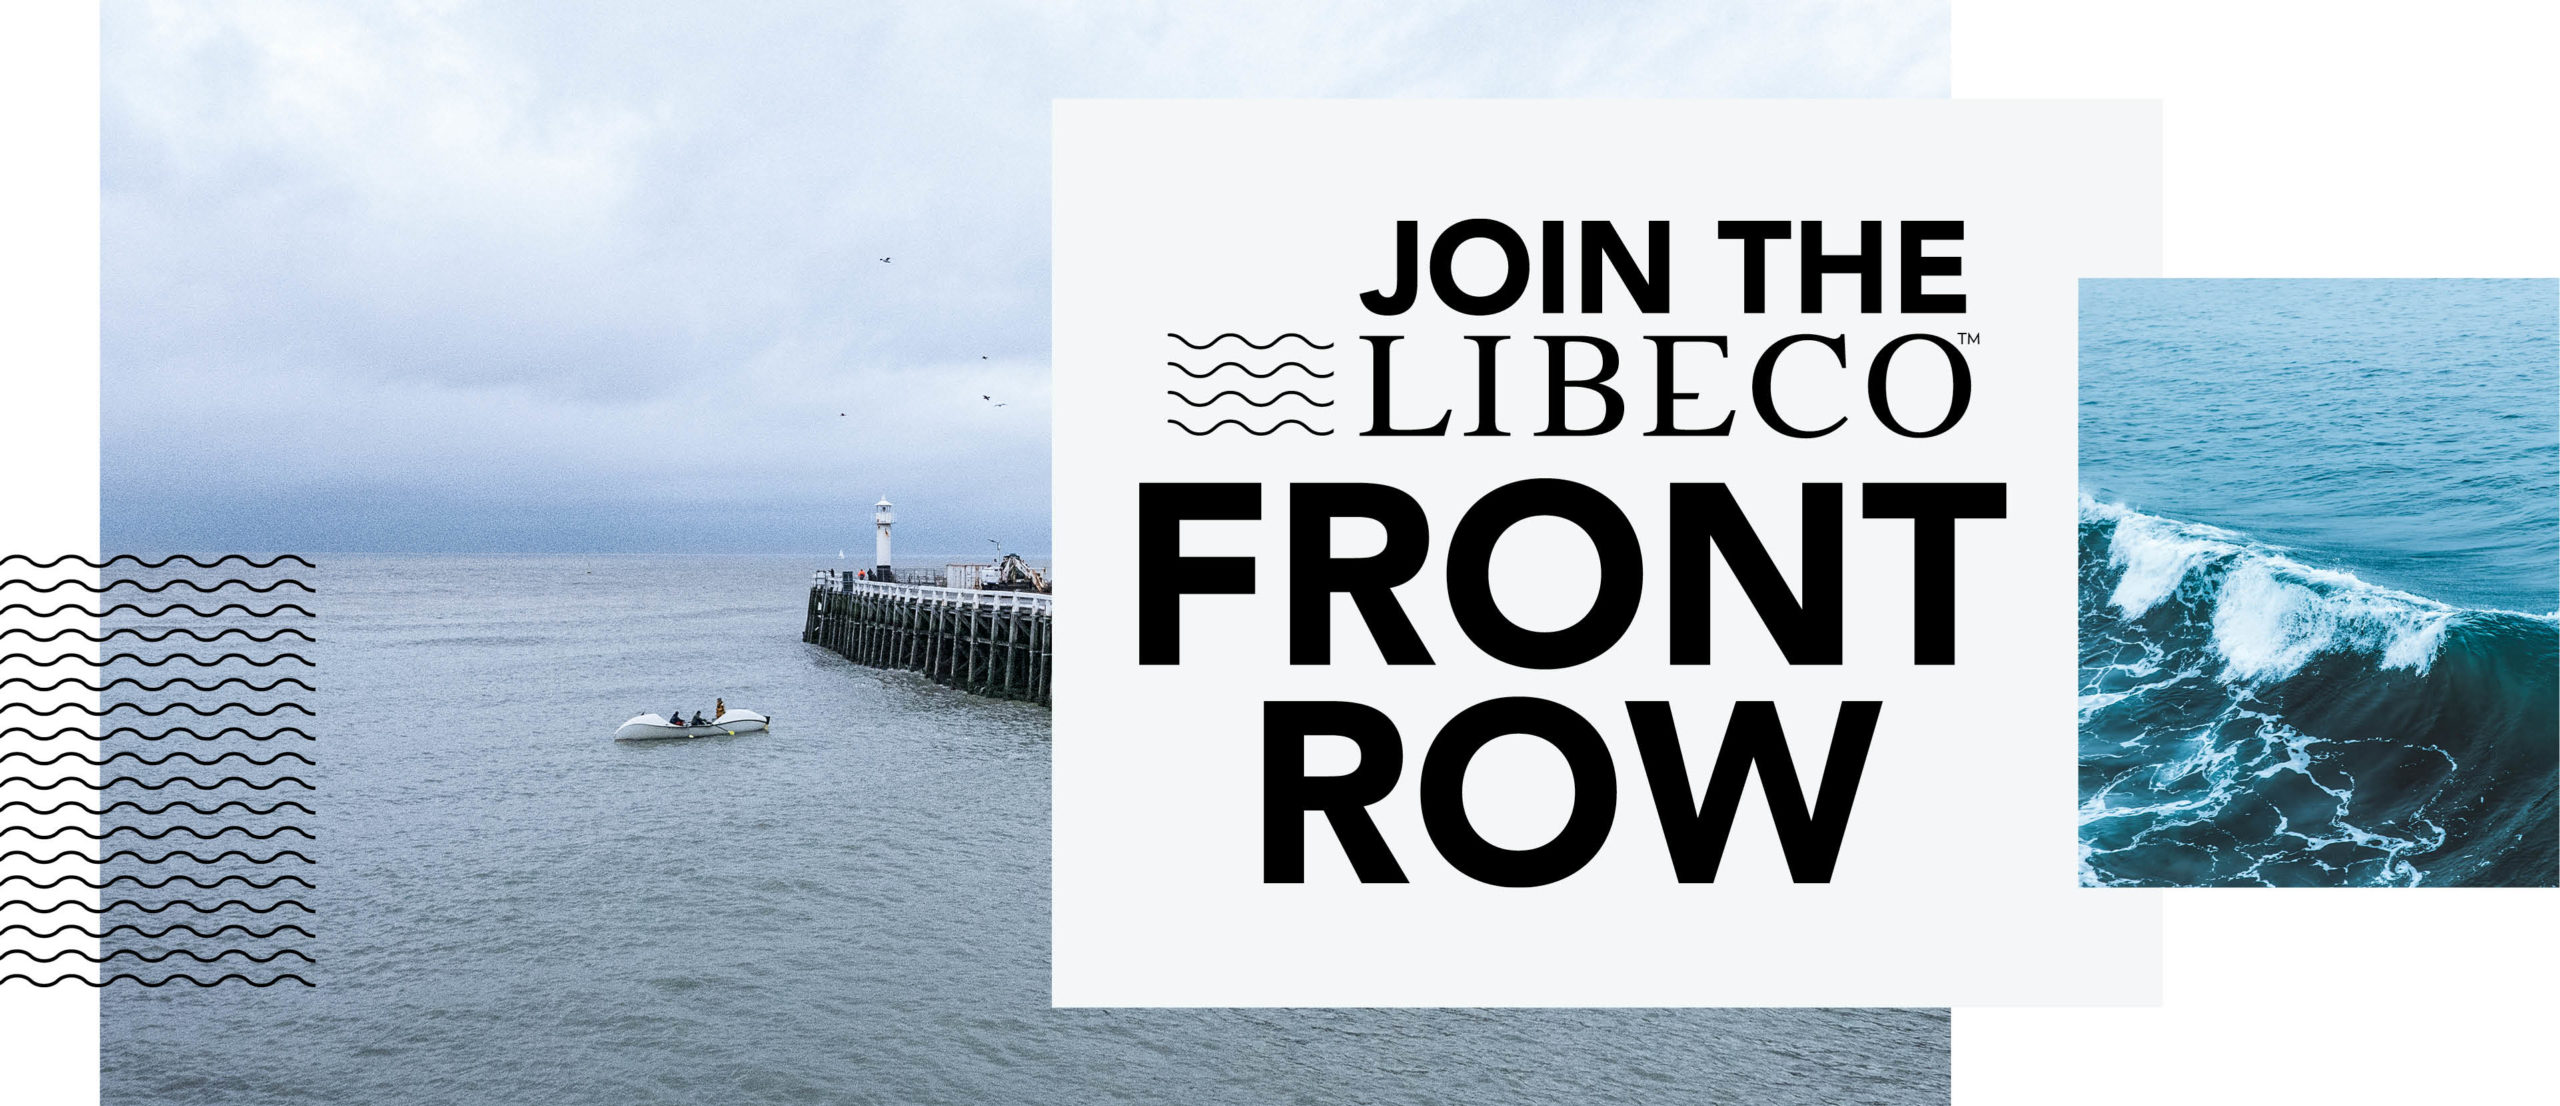 Join the Libeco Front Row!